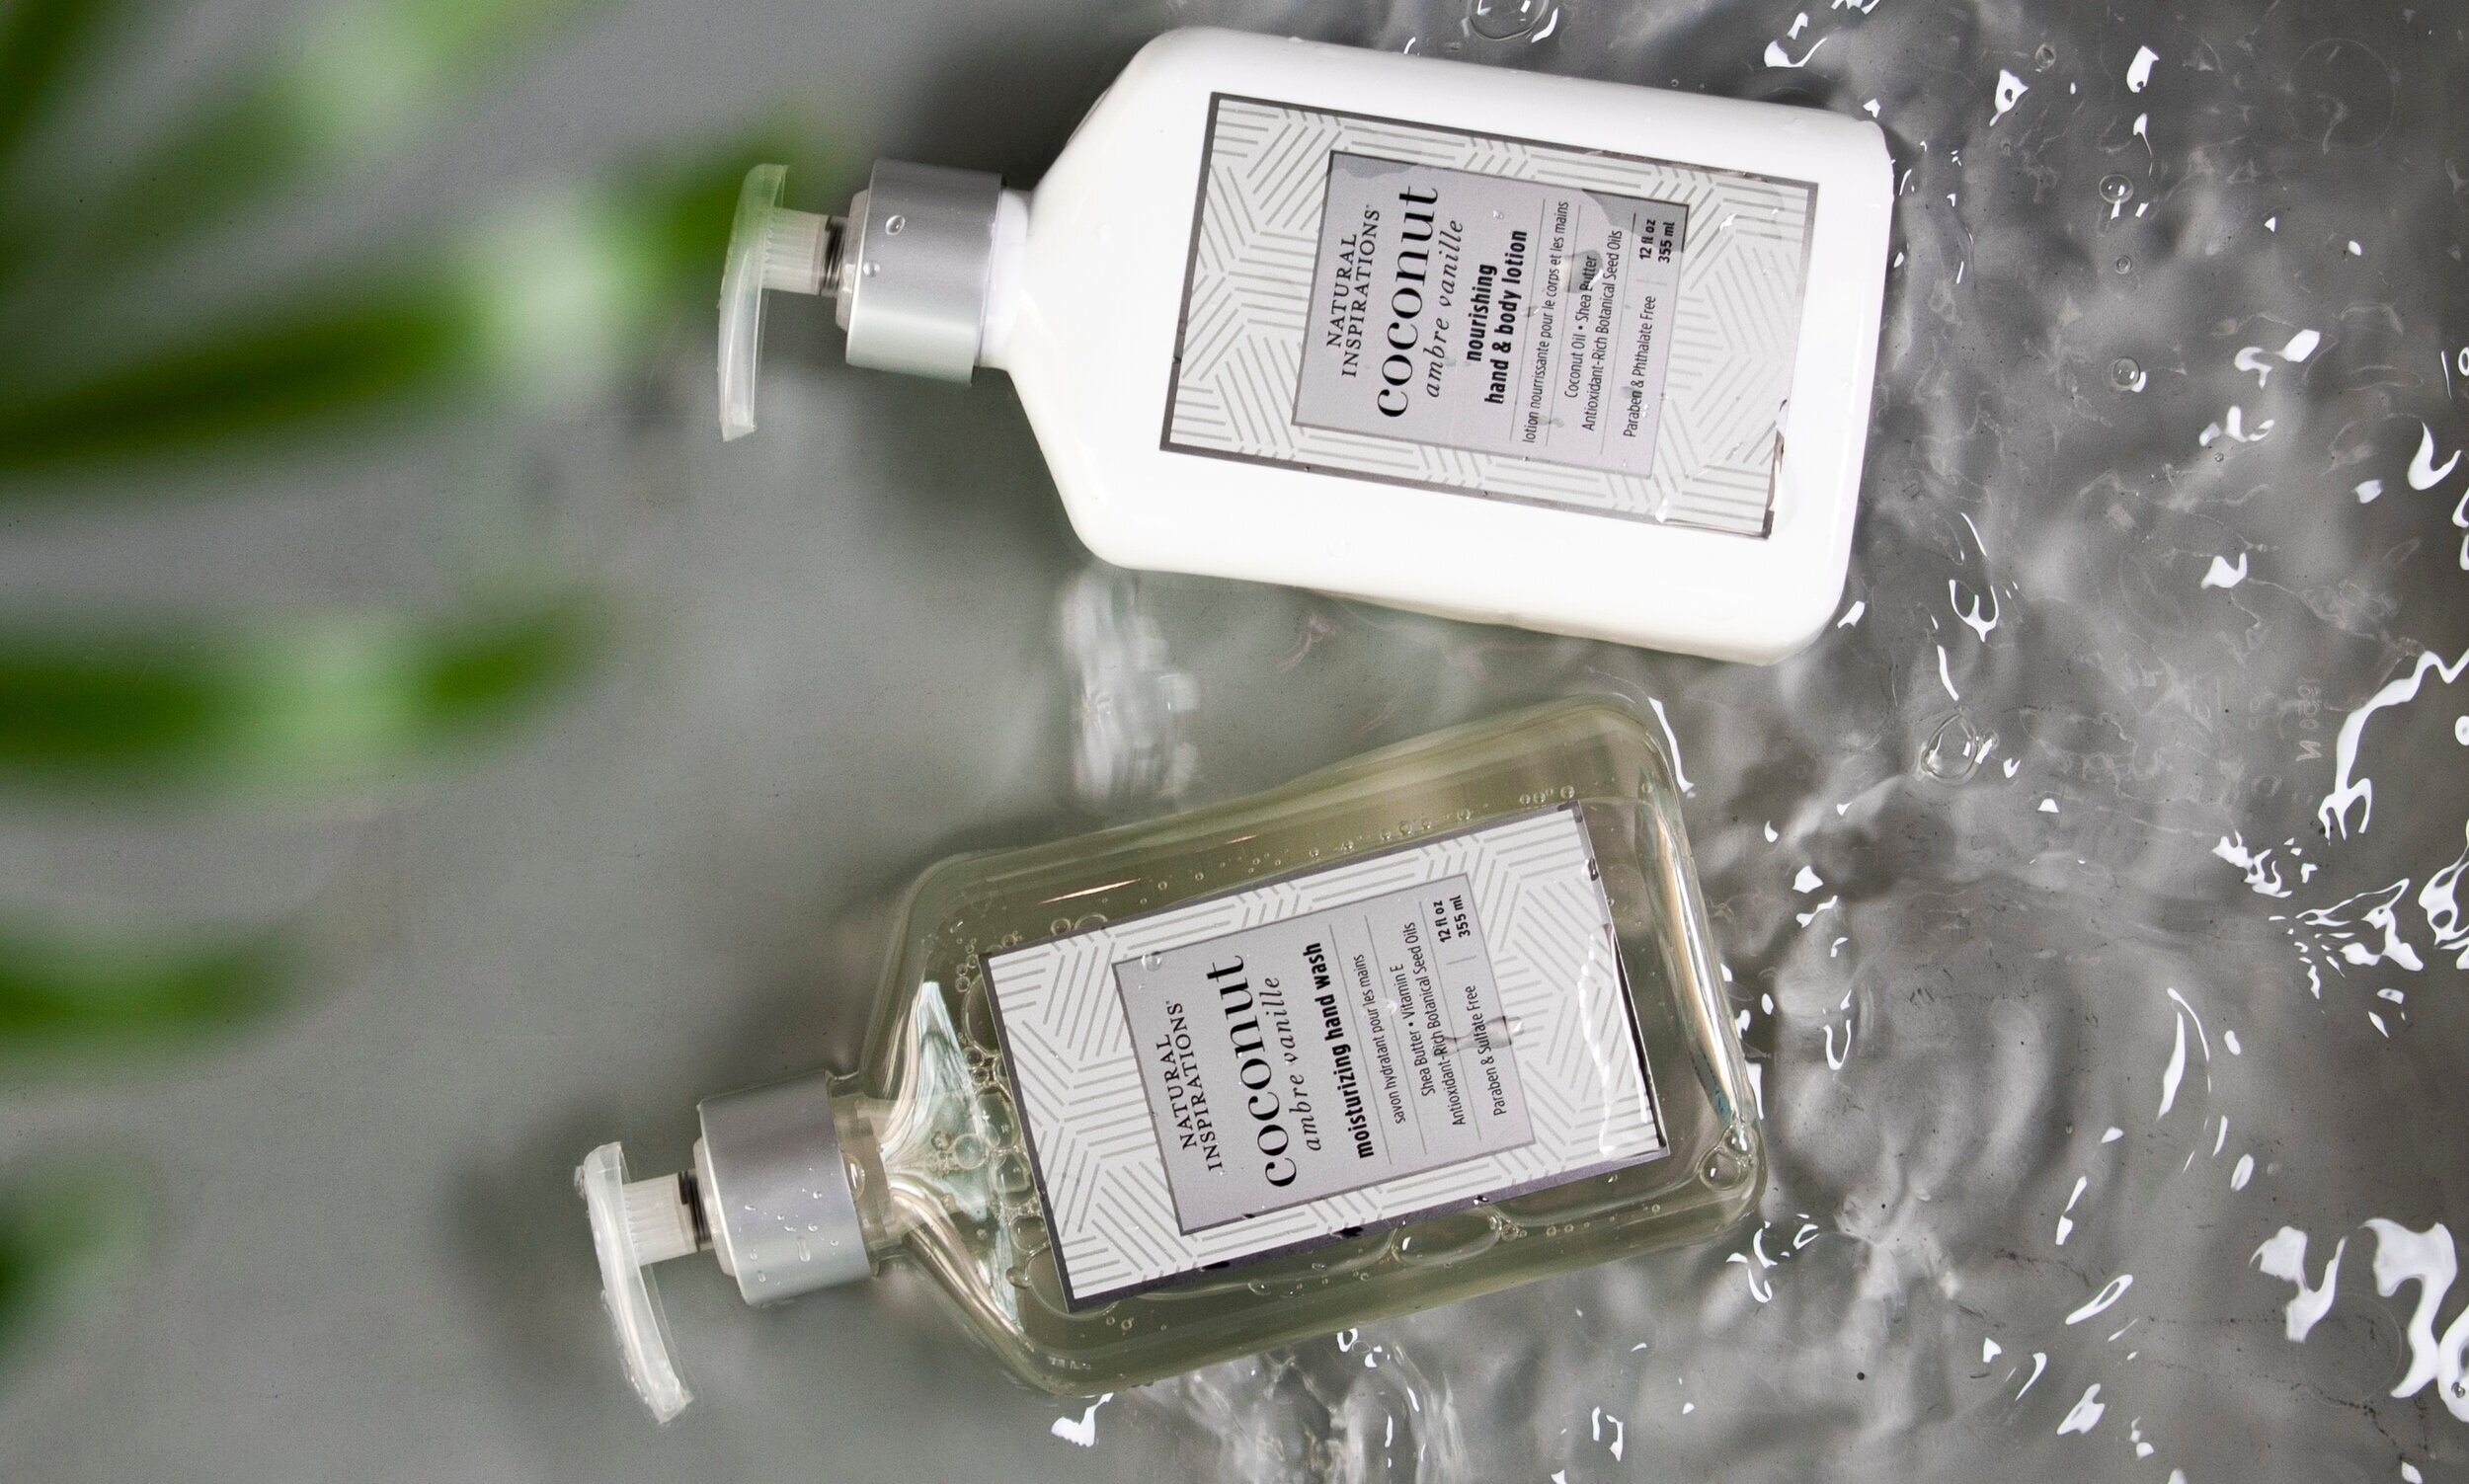 Moisturizing Hand Wash - Refresh & rejuvenate your hands with our super sudsy, sulfate-free moisturizing hand wash loaded with skin-loving botanicals & light, clean, fresh fragrances.